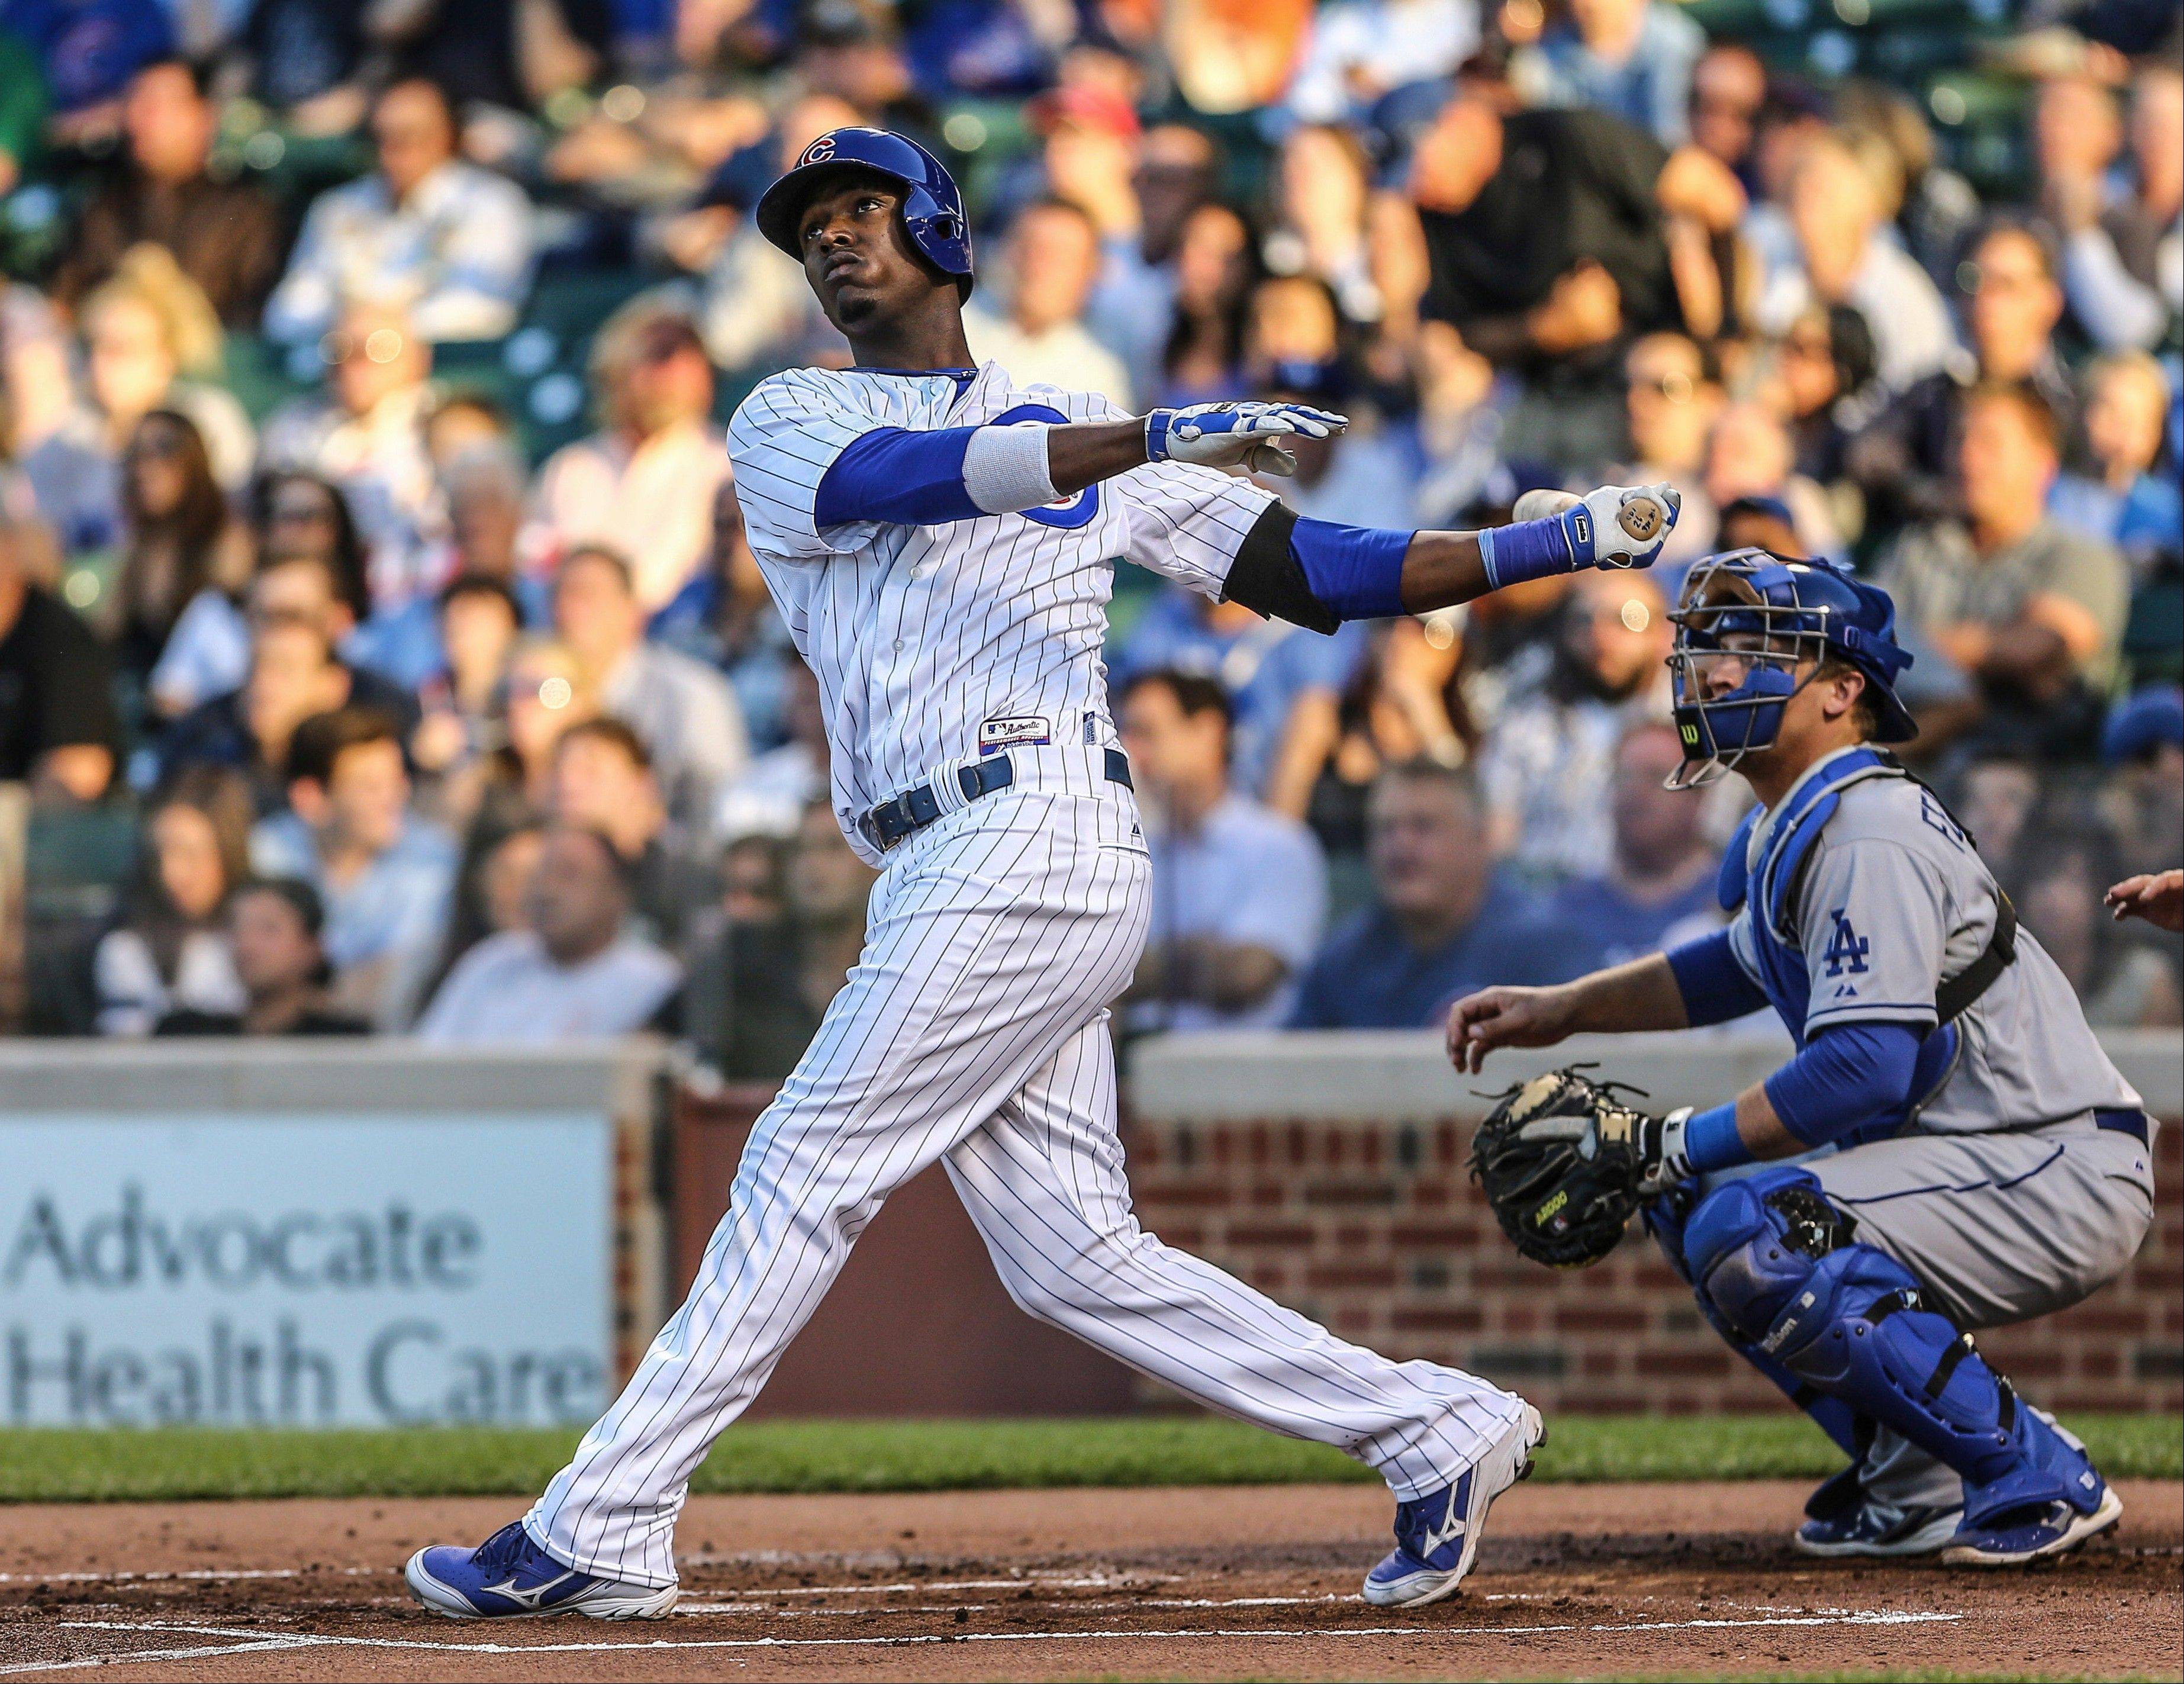 Cubs rookie Lake continues to make big splash